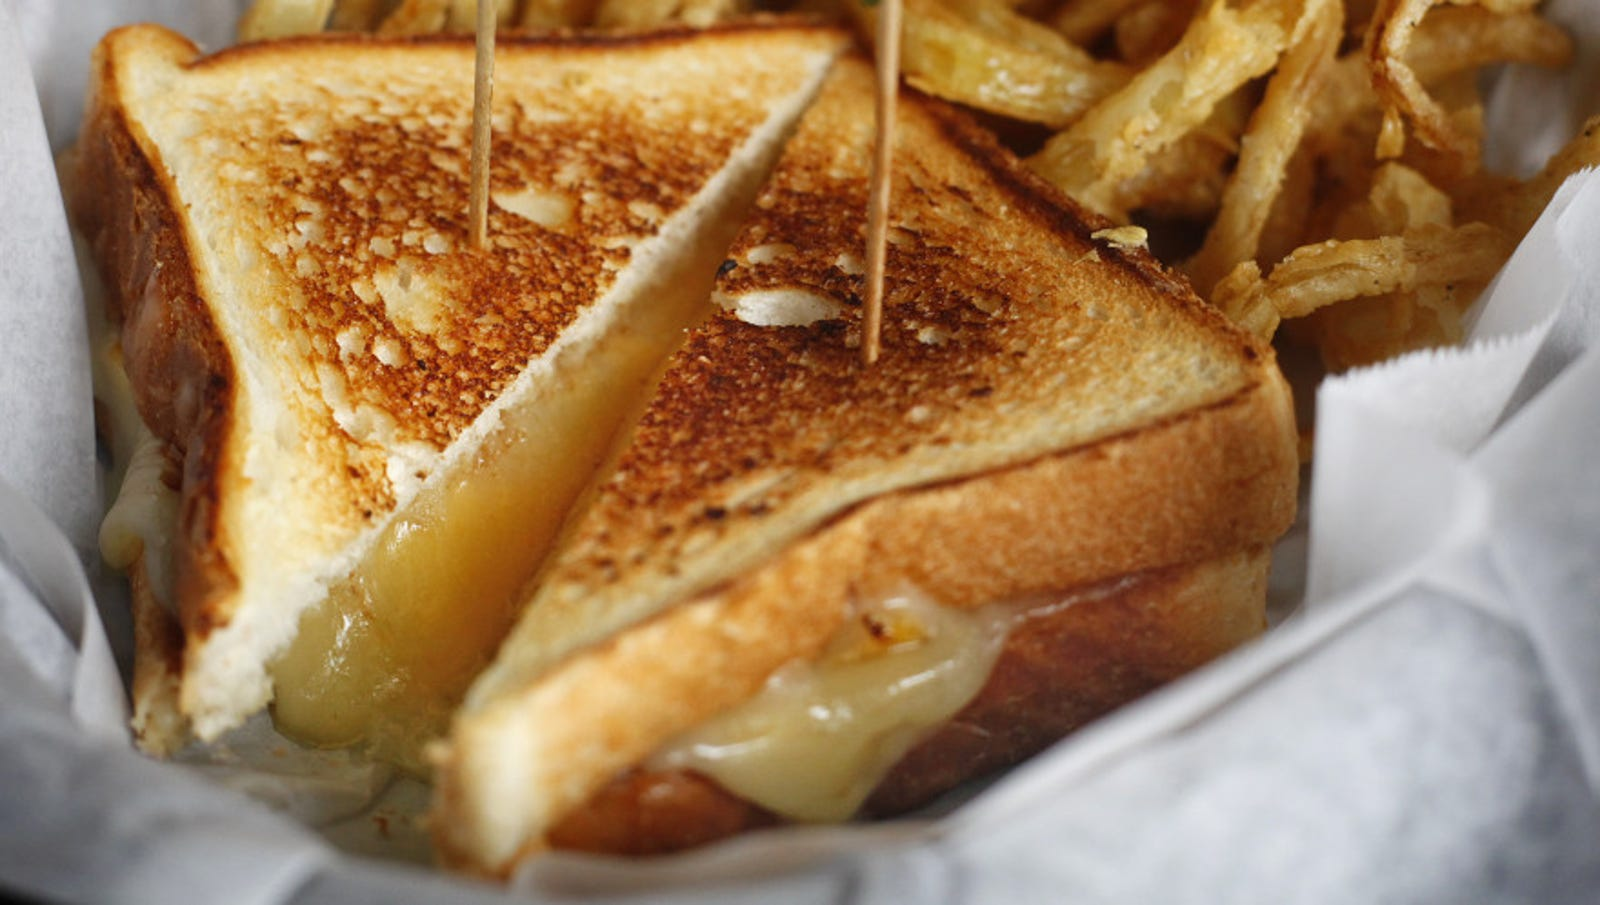 Just a bunch of photos of grilled cheese